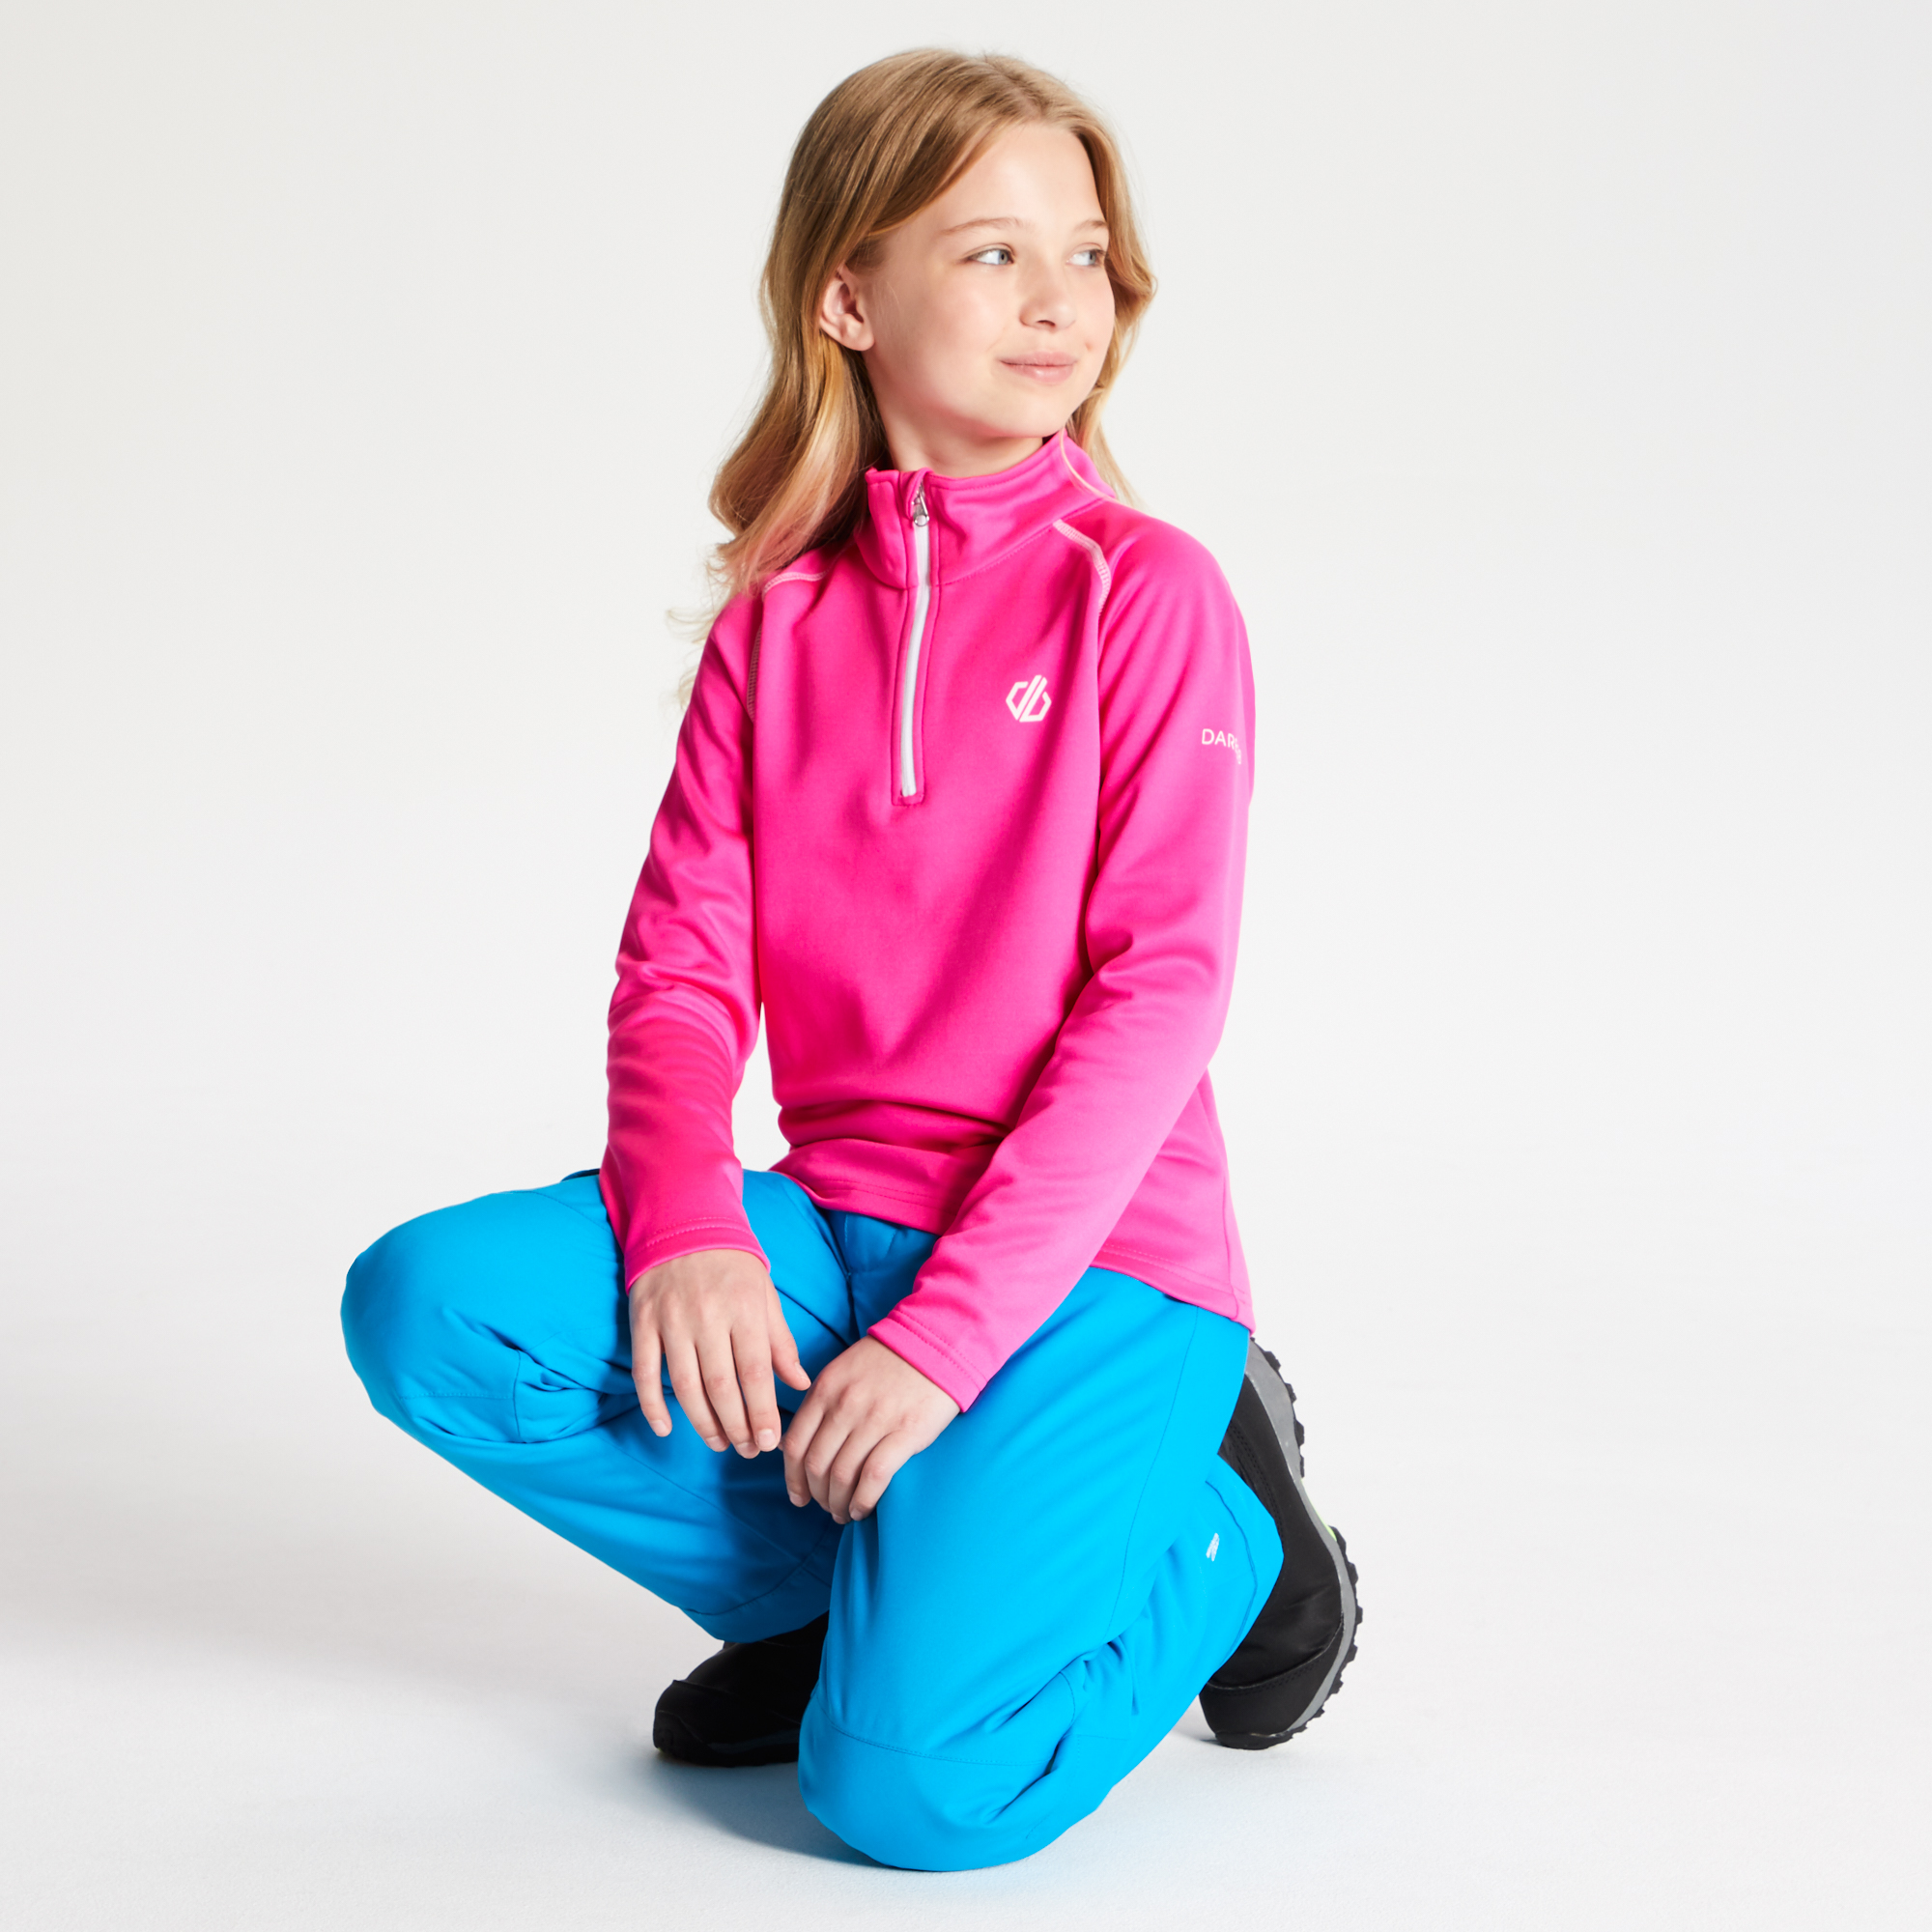 Girls Stretch Fleece  Warm Top Dare 2b Diverted Core Boys mid layer  RRP £20